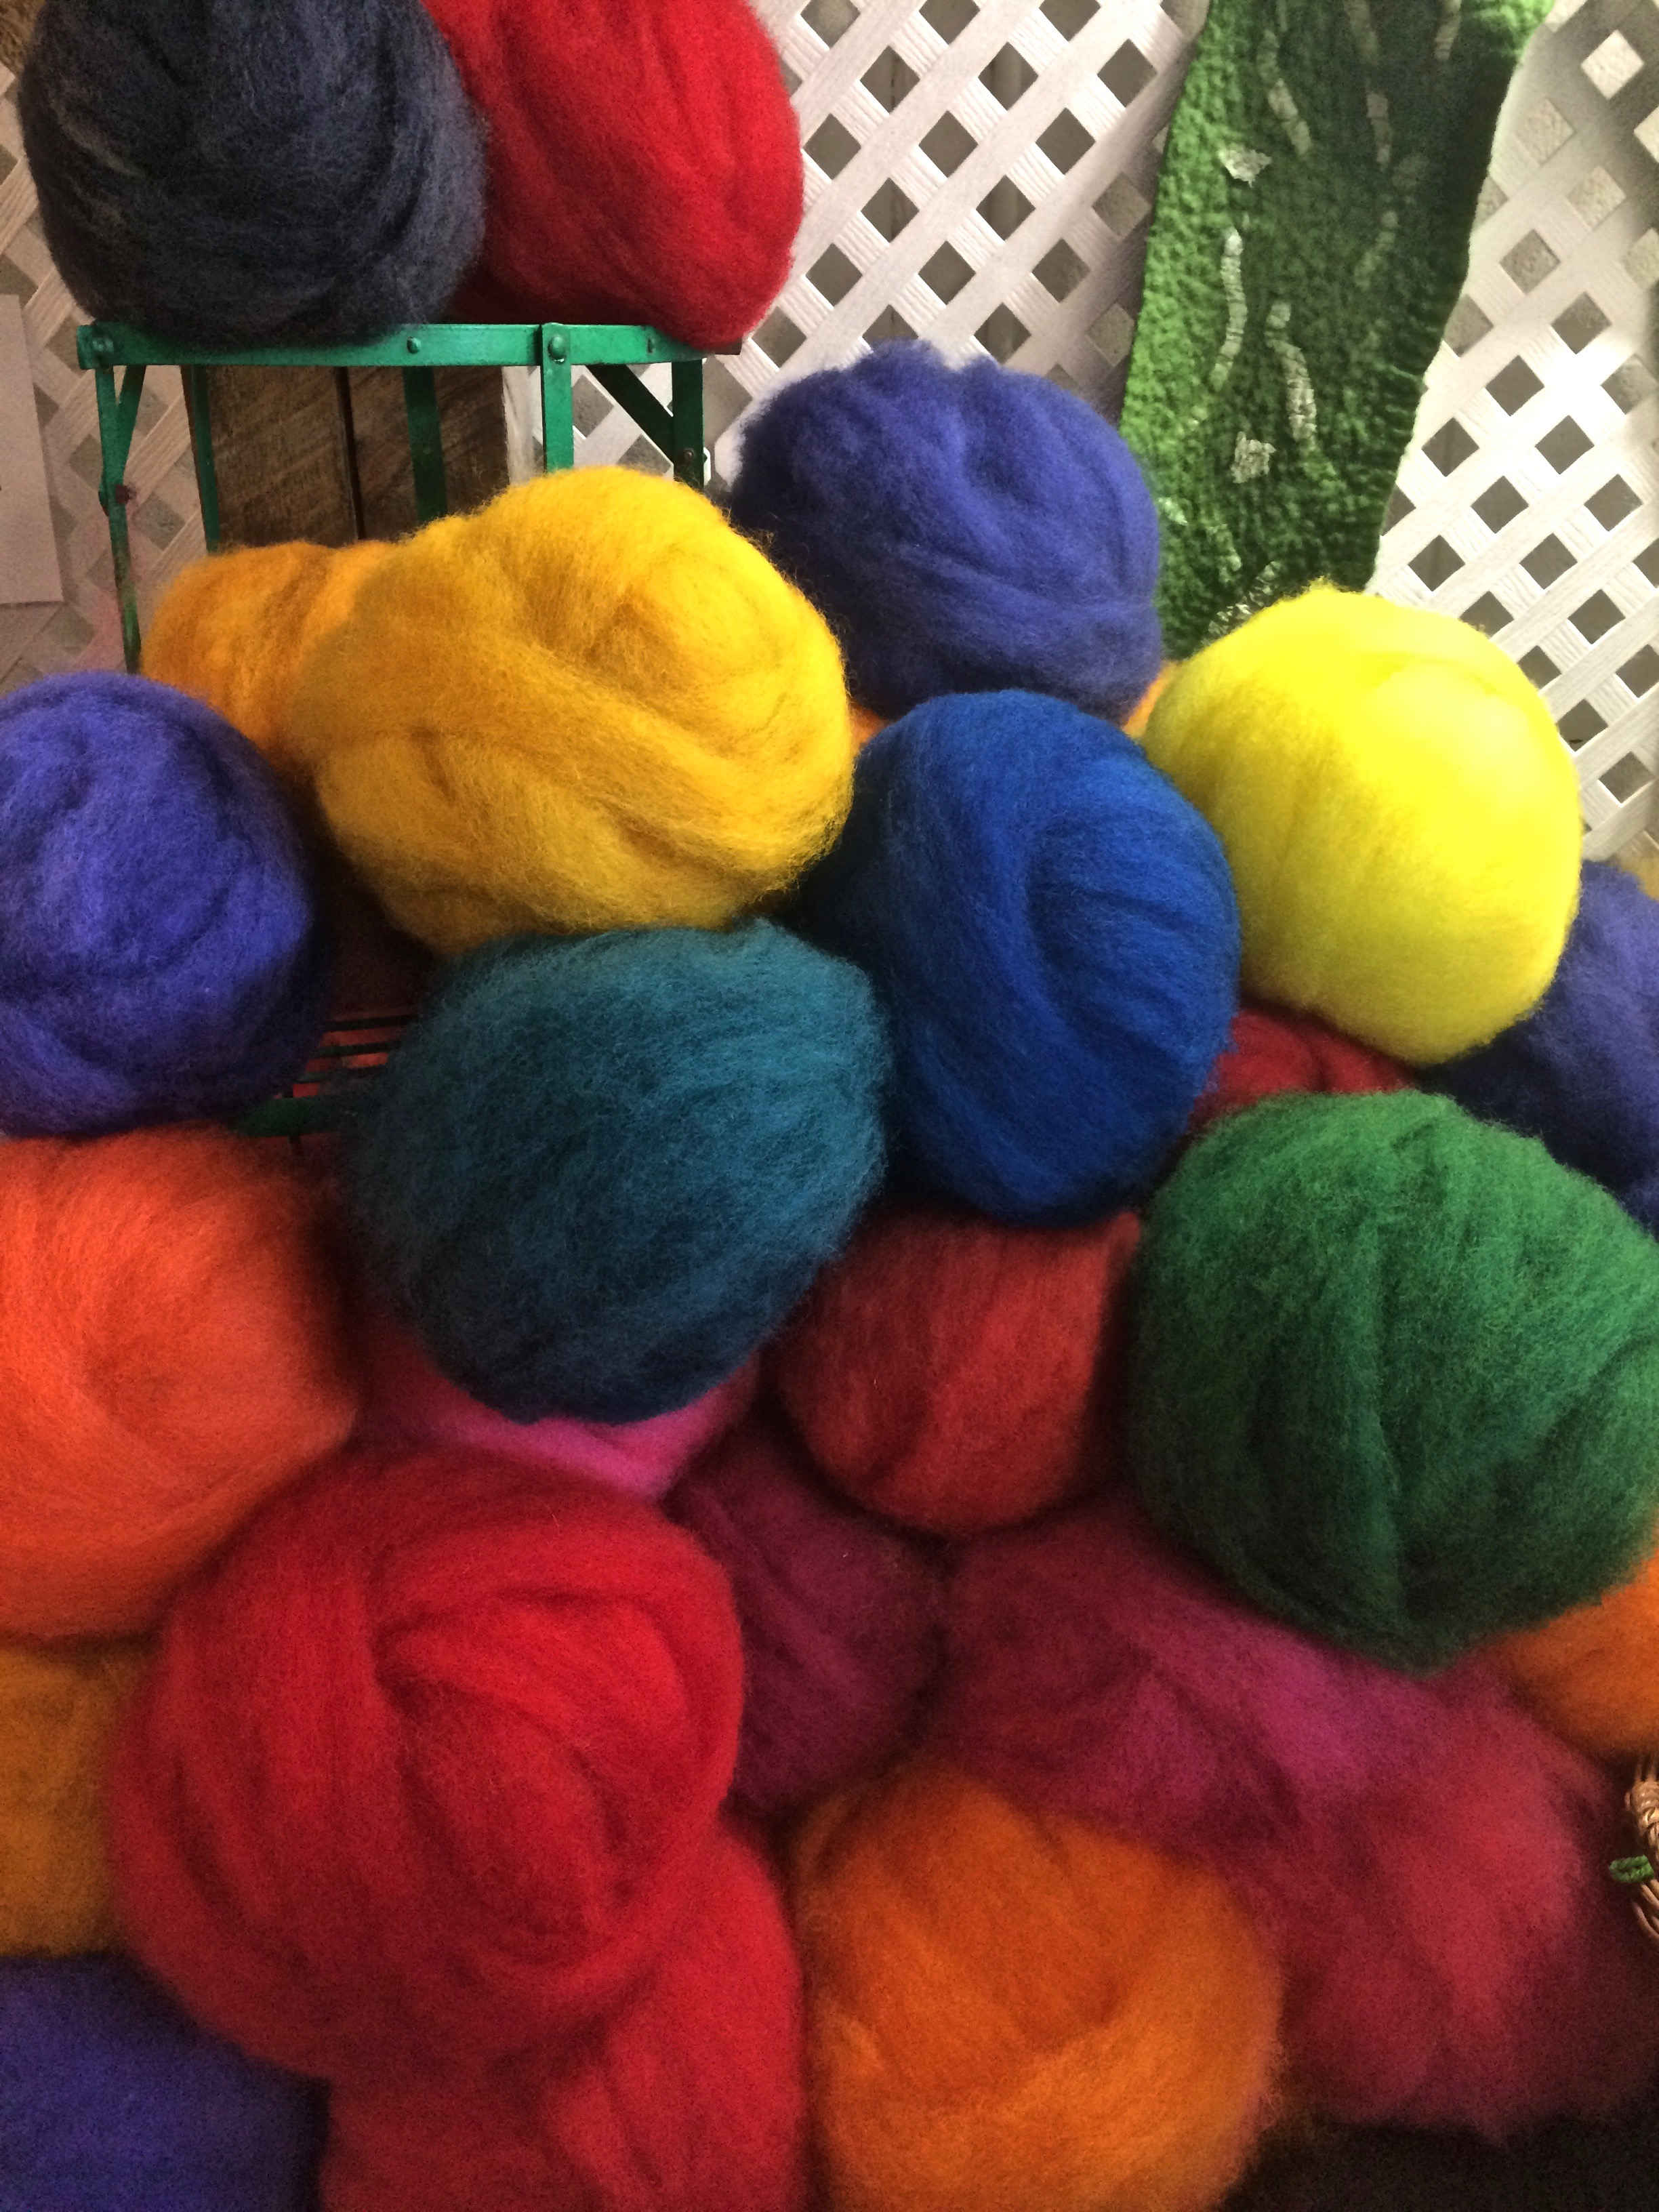 I've always wanted to start needle felting so I was in heaven. -